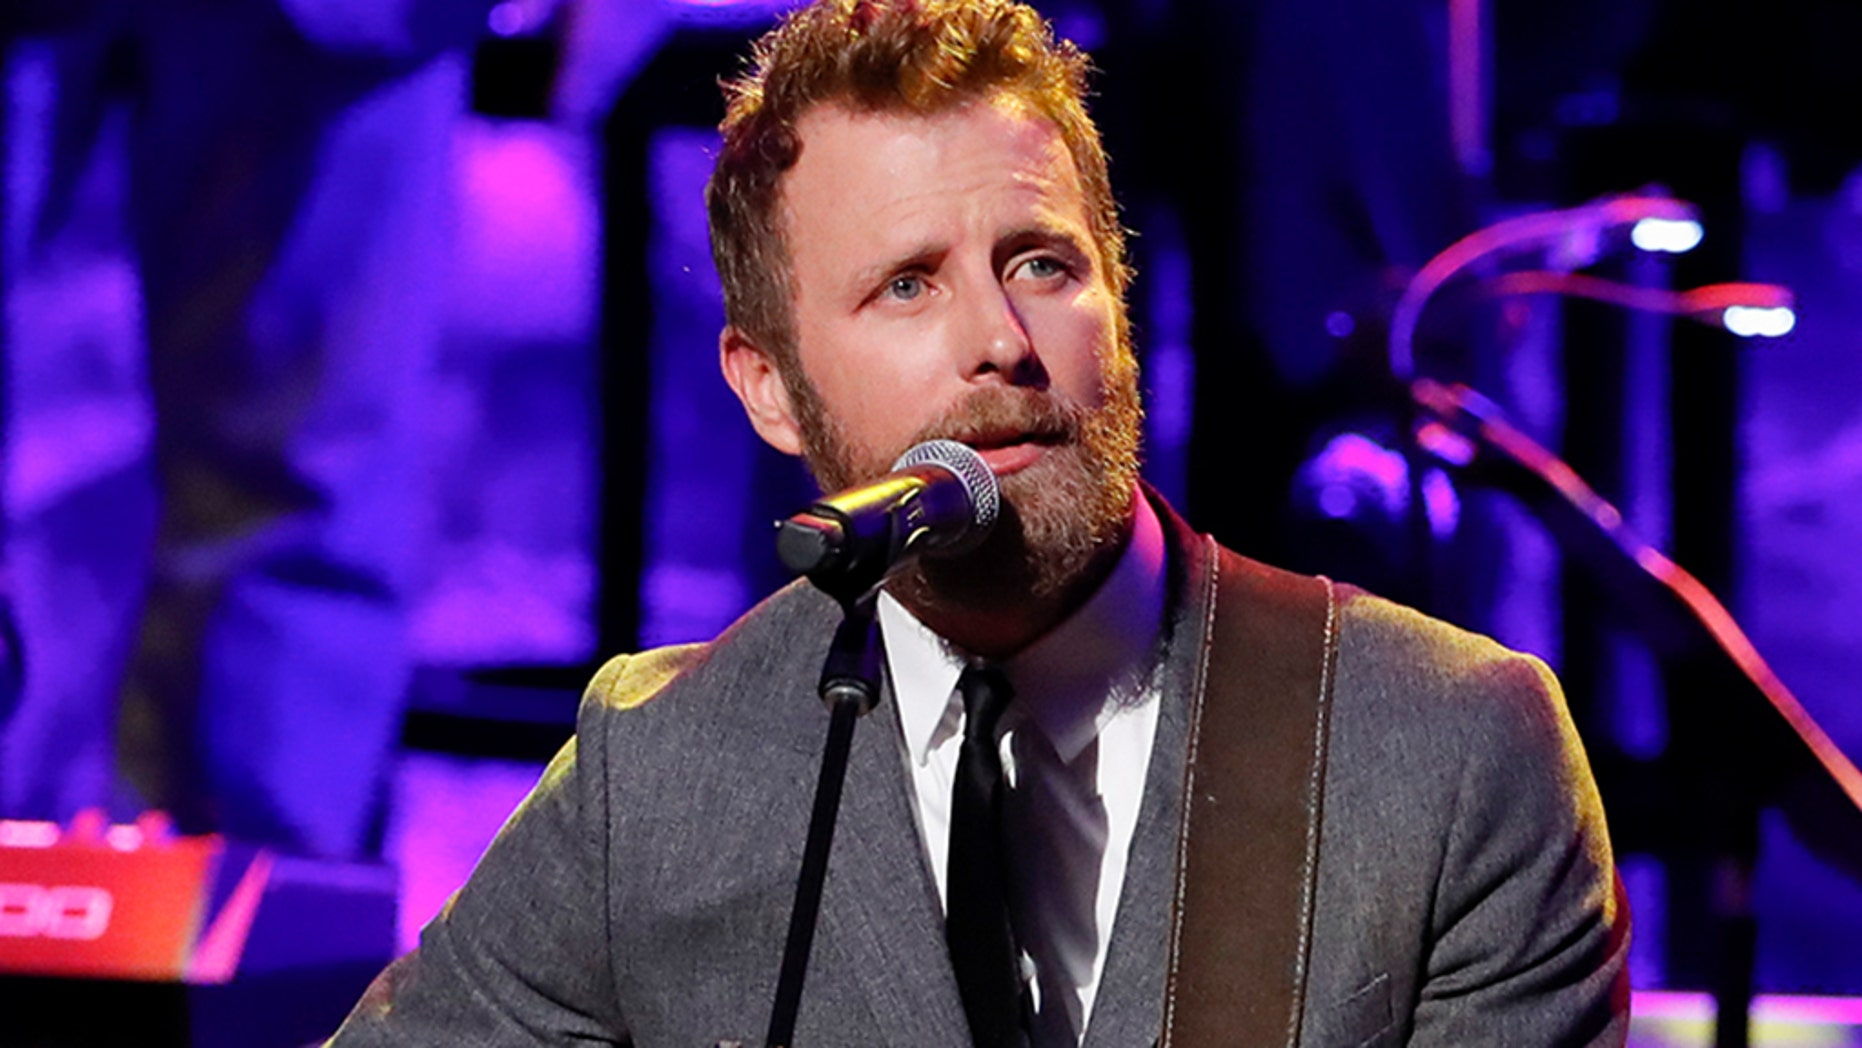 """Dierks Bentley, pictured here performing at the 2018 Medallion Ceremony at the Country Music Hall of Fame and Museum on Oct. 21 in Nashville, Tenn., is set to produce a comedy series with """"Last Man Standing"""" creator, Jack Burditt."""